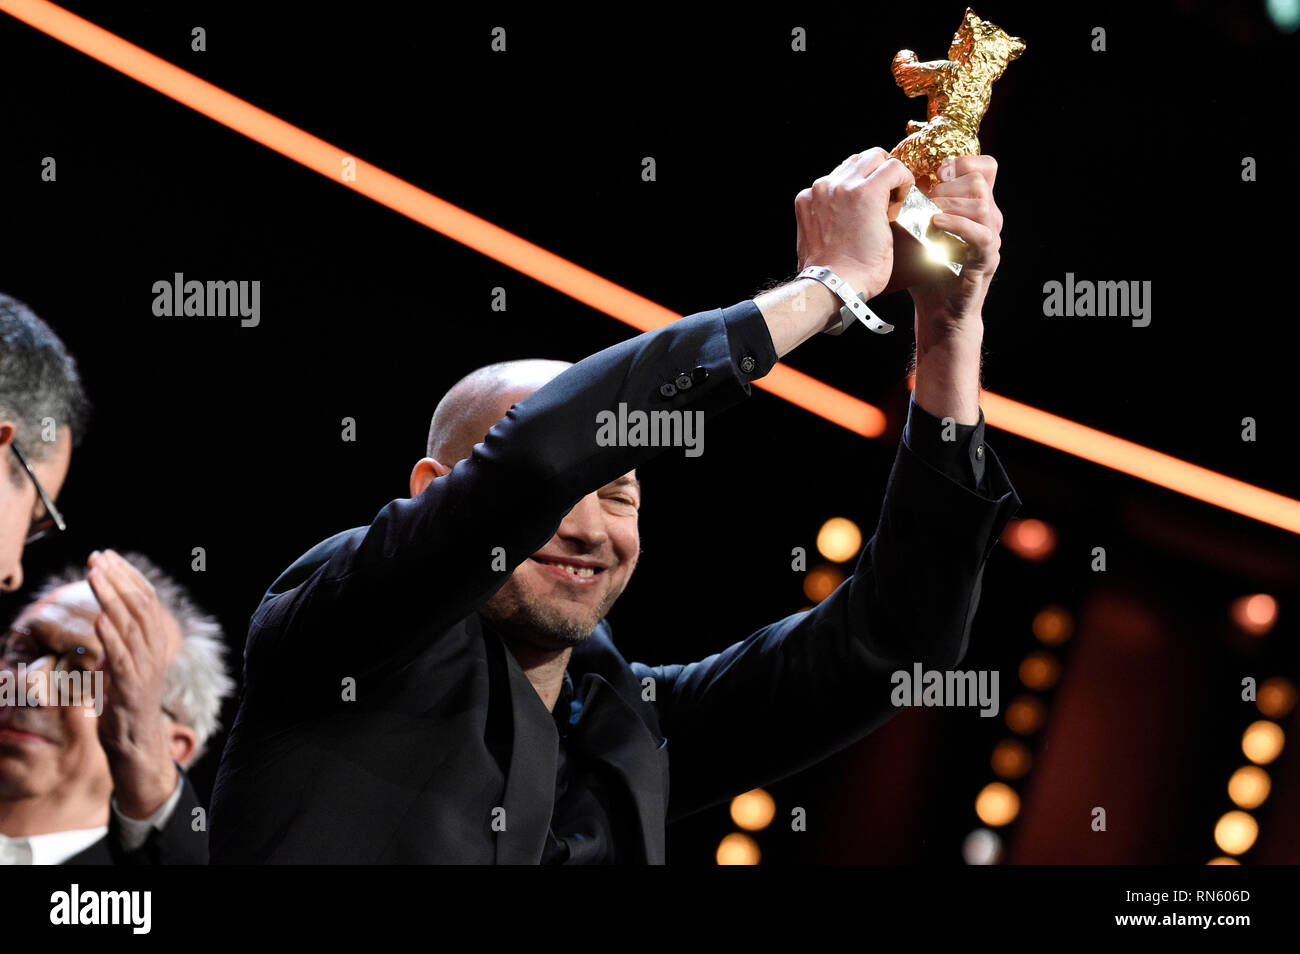 Berlin, Germany. 16th February 2019. Berlin, Germany. 16th February 2019. Nadav Lapid, winner of the Golden Bear for Best Film for 'Synonyms', poses at the closing ceremony during the 69th Berlin International Film Festival / Berlinale 2019 at Berlinale Palace on February 16, 2019 in Berlin, Germany. Credit: Geisler-Fotopress GmbH/Alamy Live News Credit: Geisler-Fotopress GmbH/Alamy Live News Stock Photo